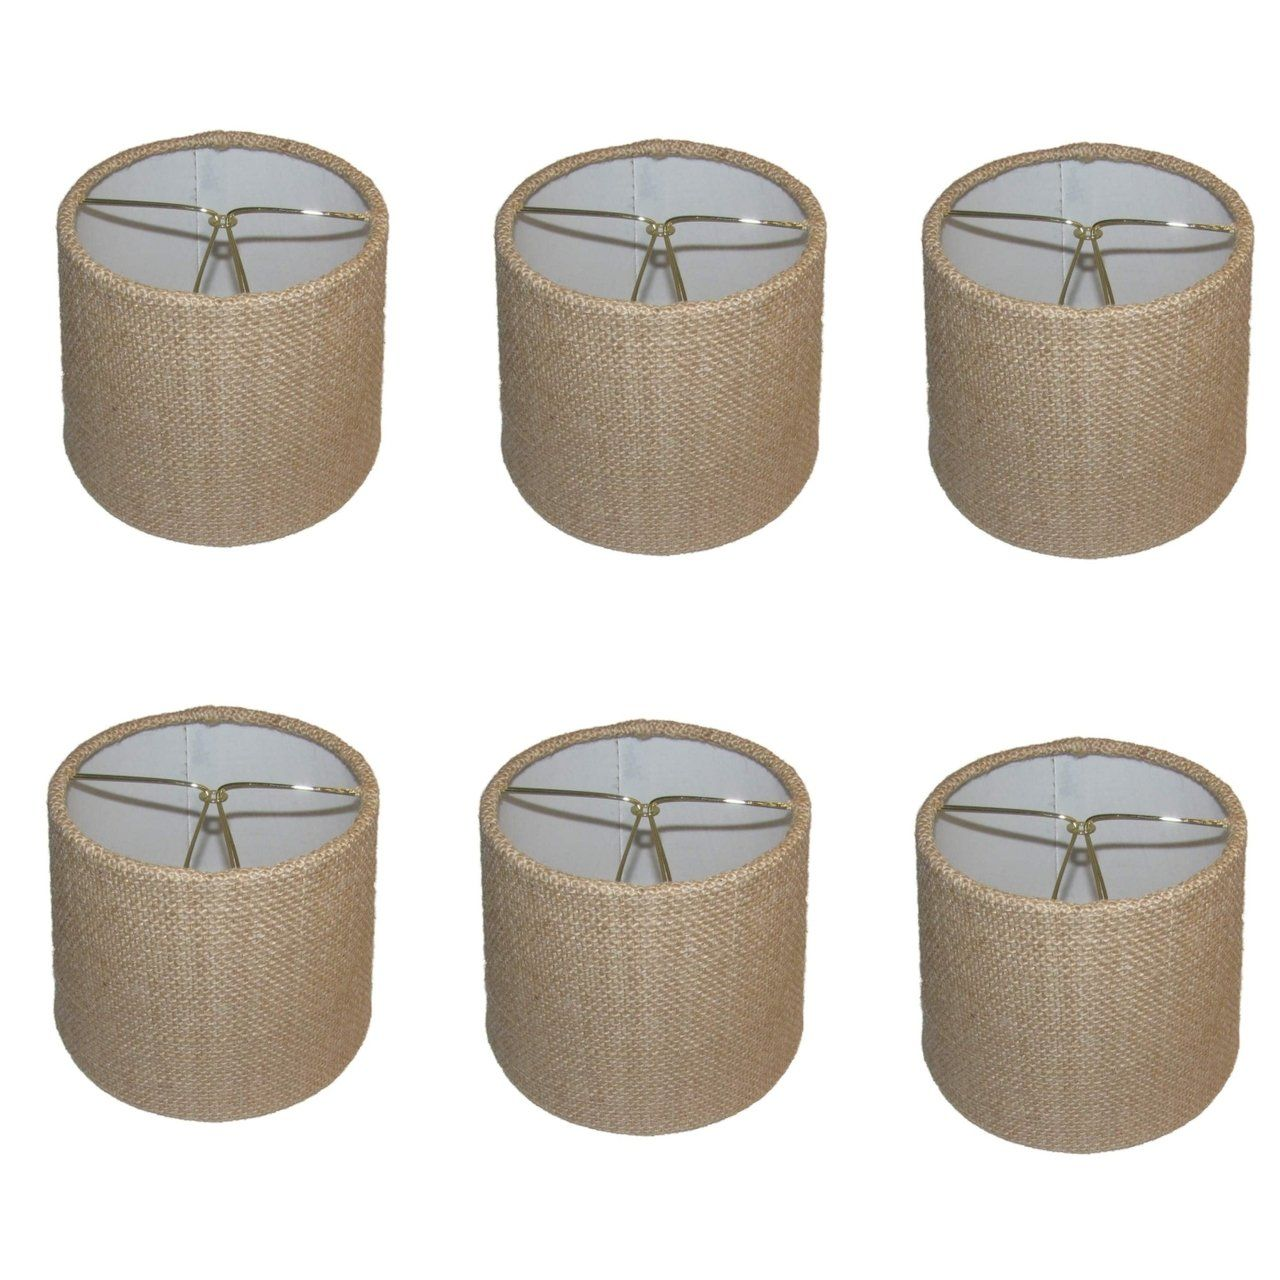 Upgradelights set of six european drum style chandelier lamp shade upgradelights set of six european drum style chandelier lamp shade mini shade natural burlap fabric aloadofball